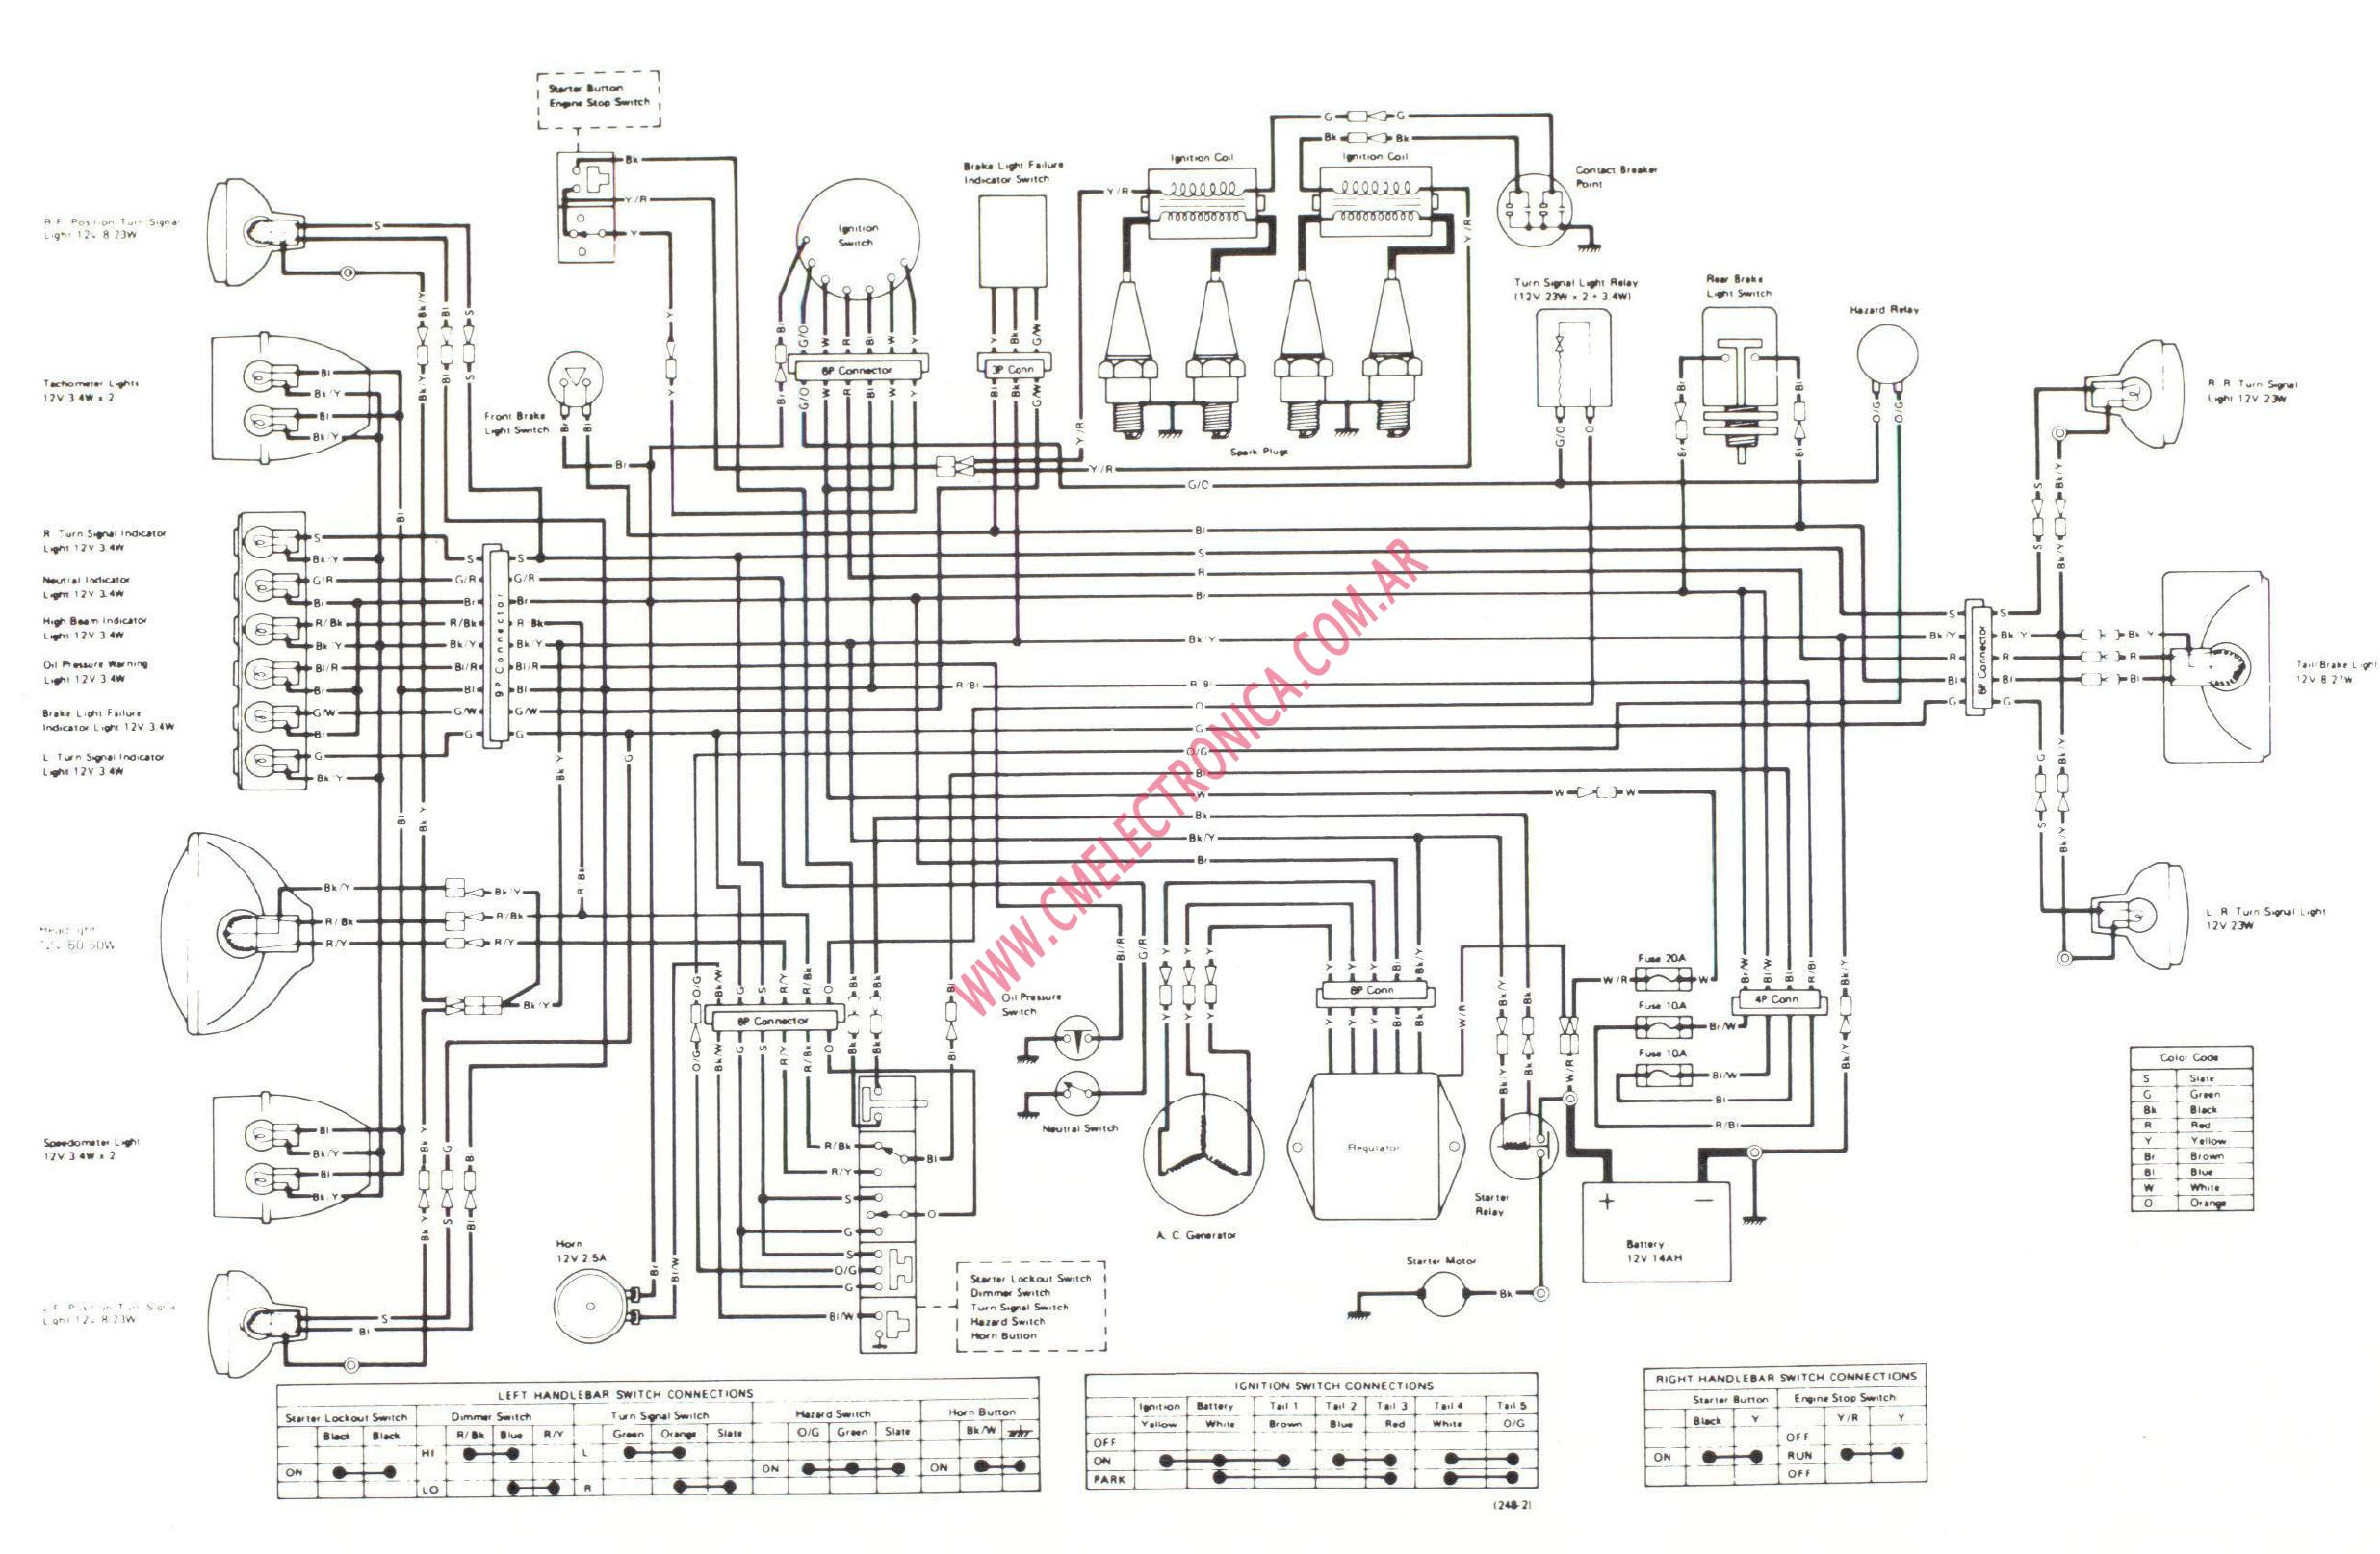 Kawasaki Motorcycle Wiring Diagrams 83 Schematic 2019 1982 Gpz 750 Diagram Get Free